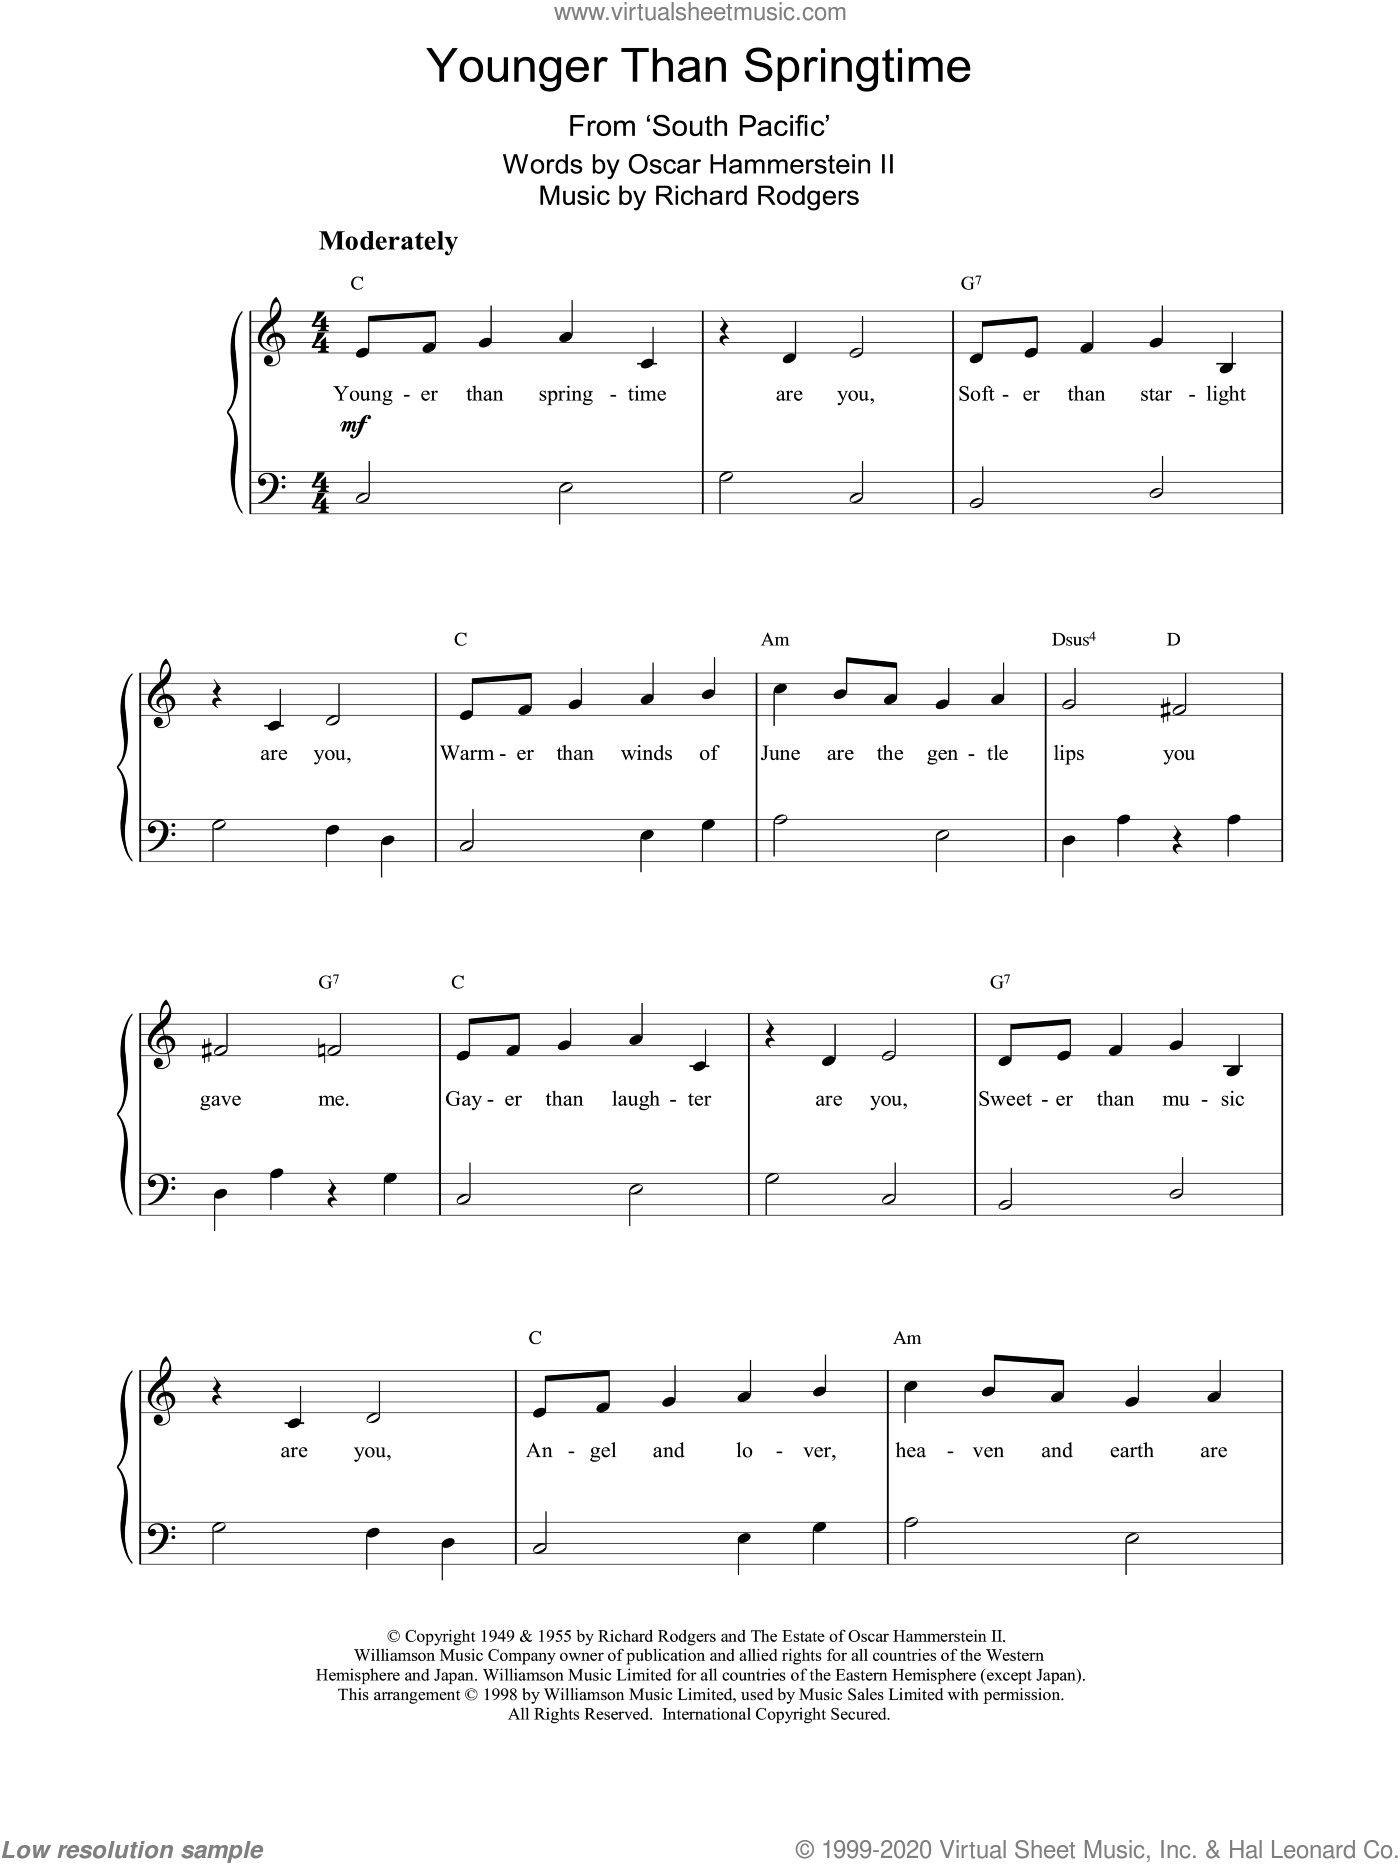 Younger Than Springtime sheet music for piano solo (chords) by Richard Rodgers